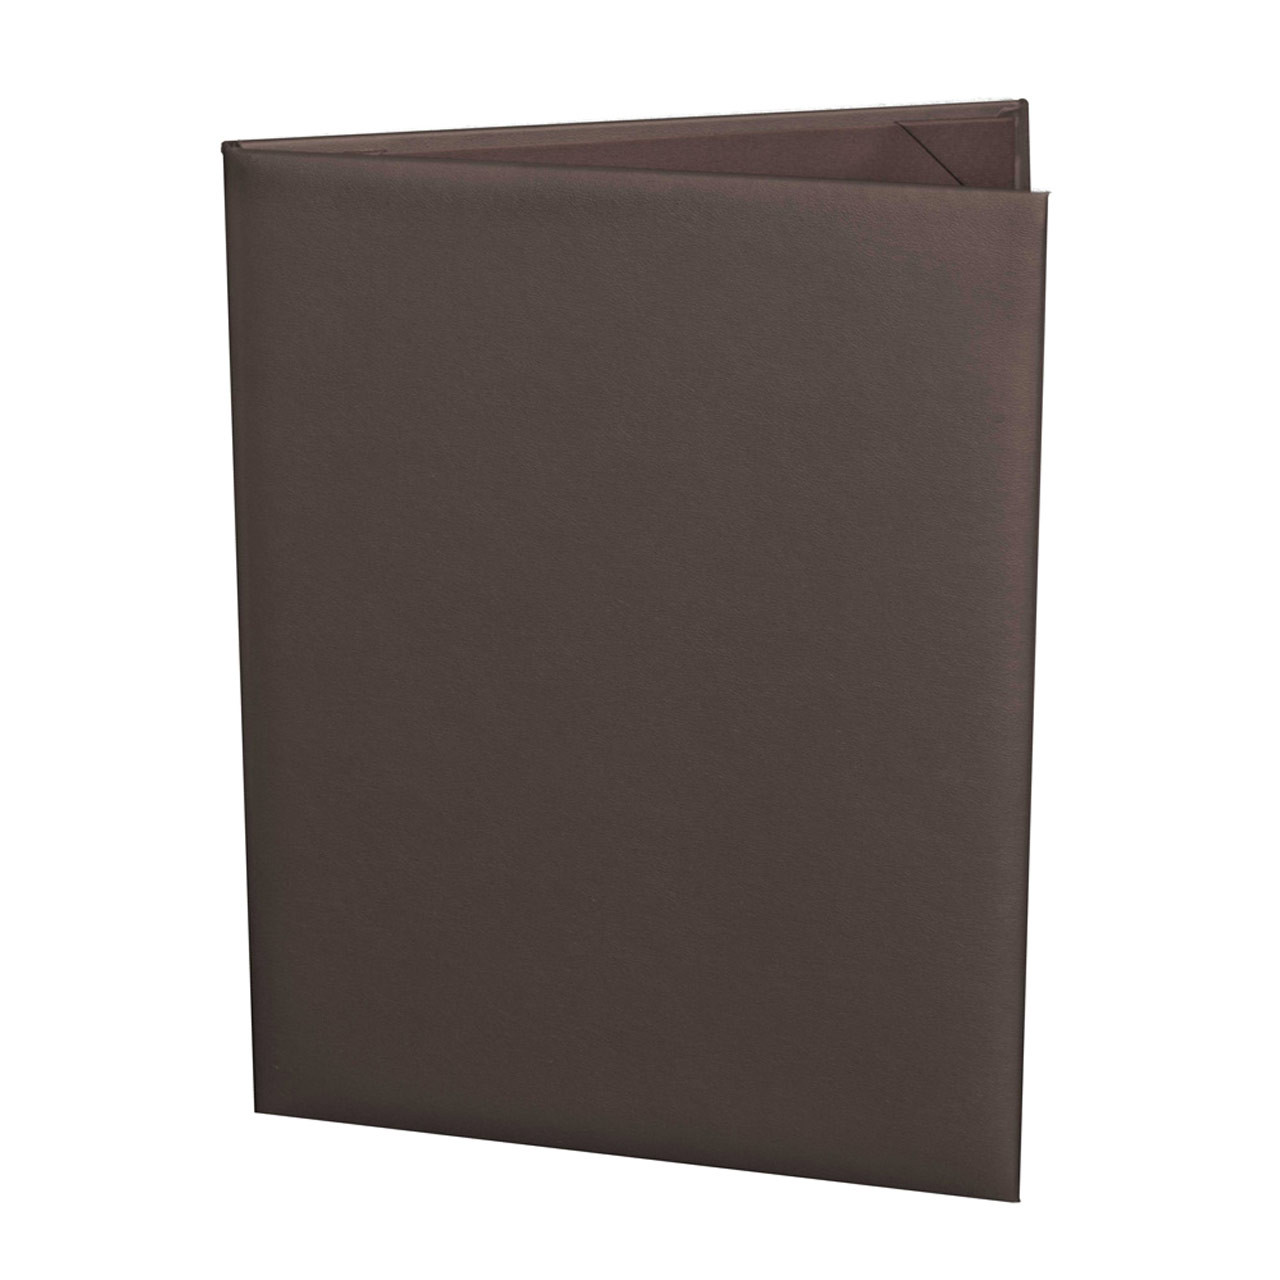 Dark Brown (Chocolate) Menu Cover for 8.5 in. x 11 in. Insert, 2-Panels (outside view)